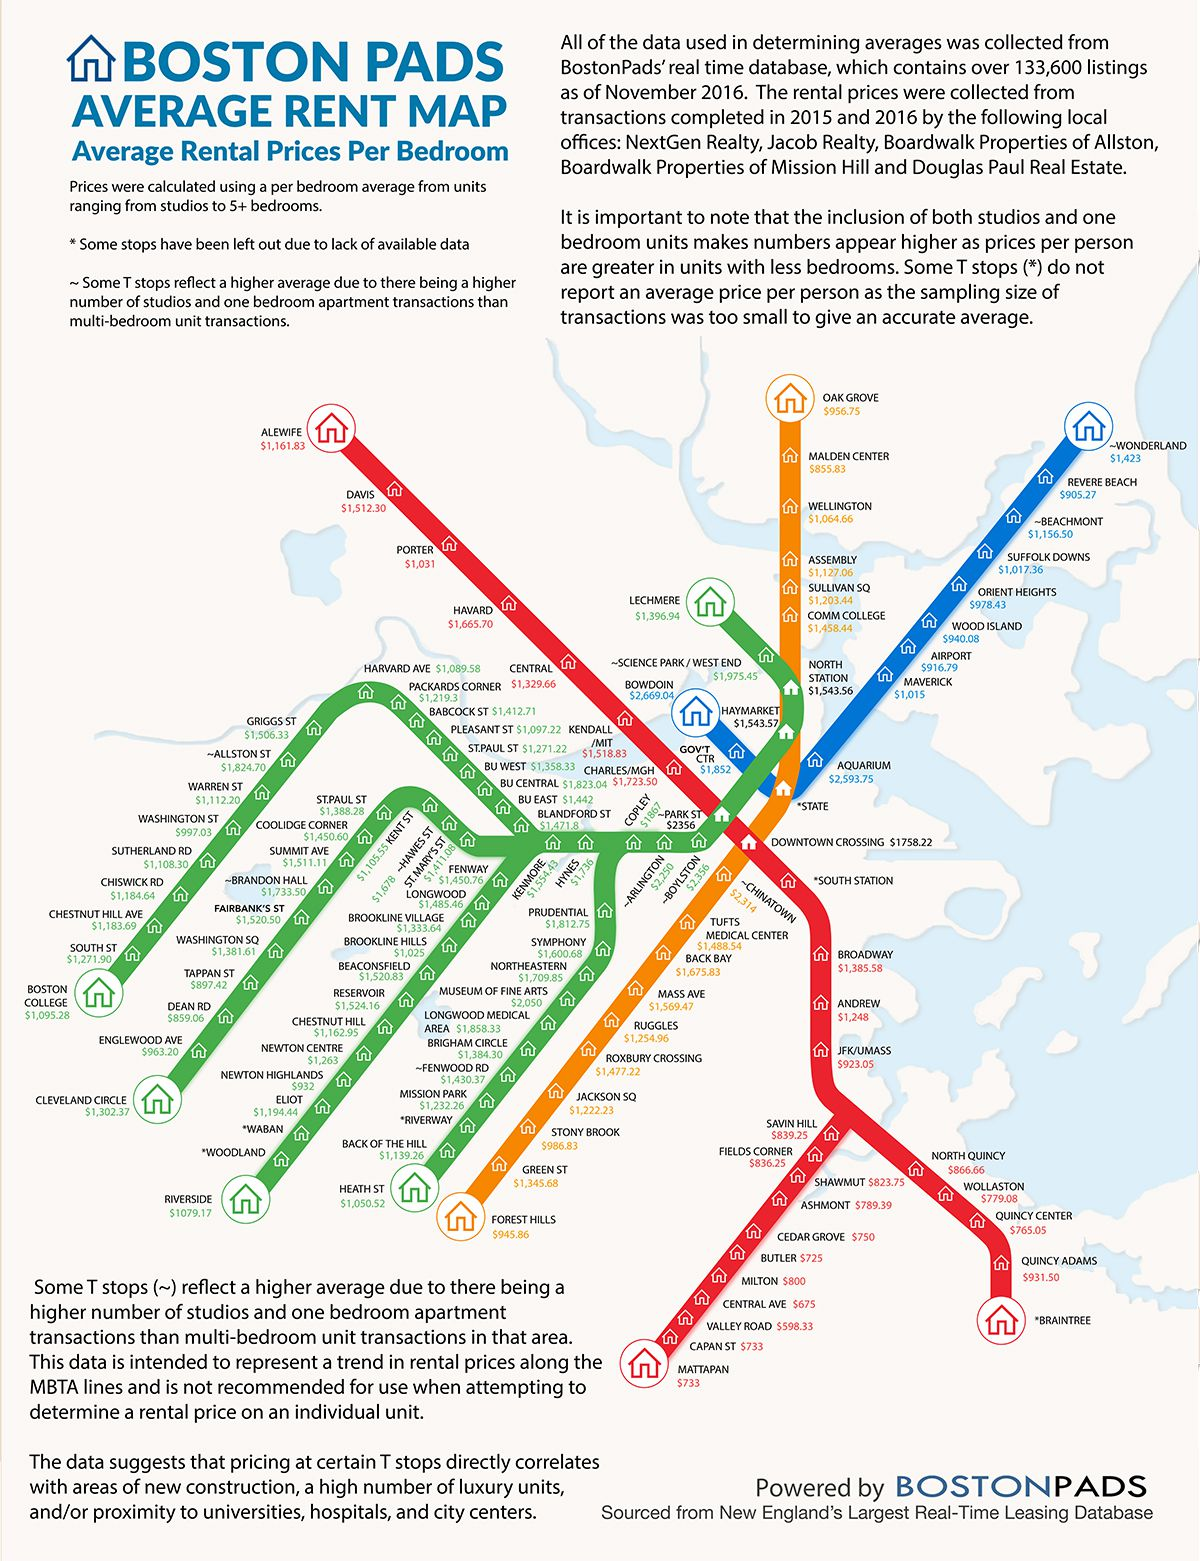 Boston apartment rents by T stop: Staying on the train can save you ...